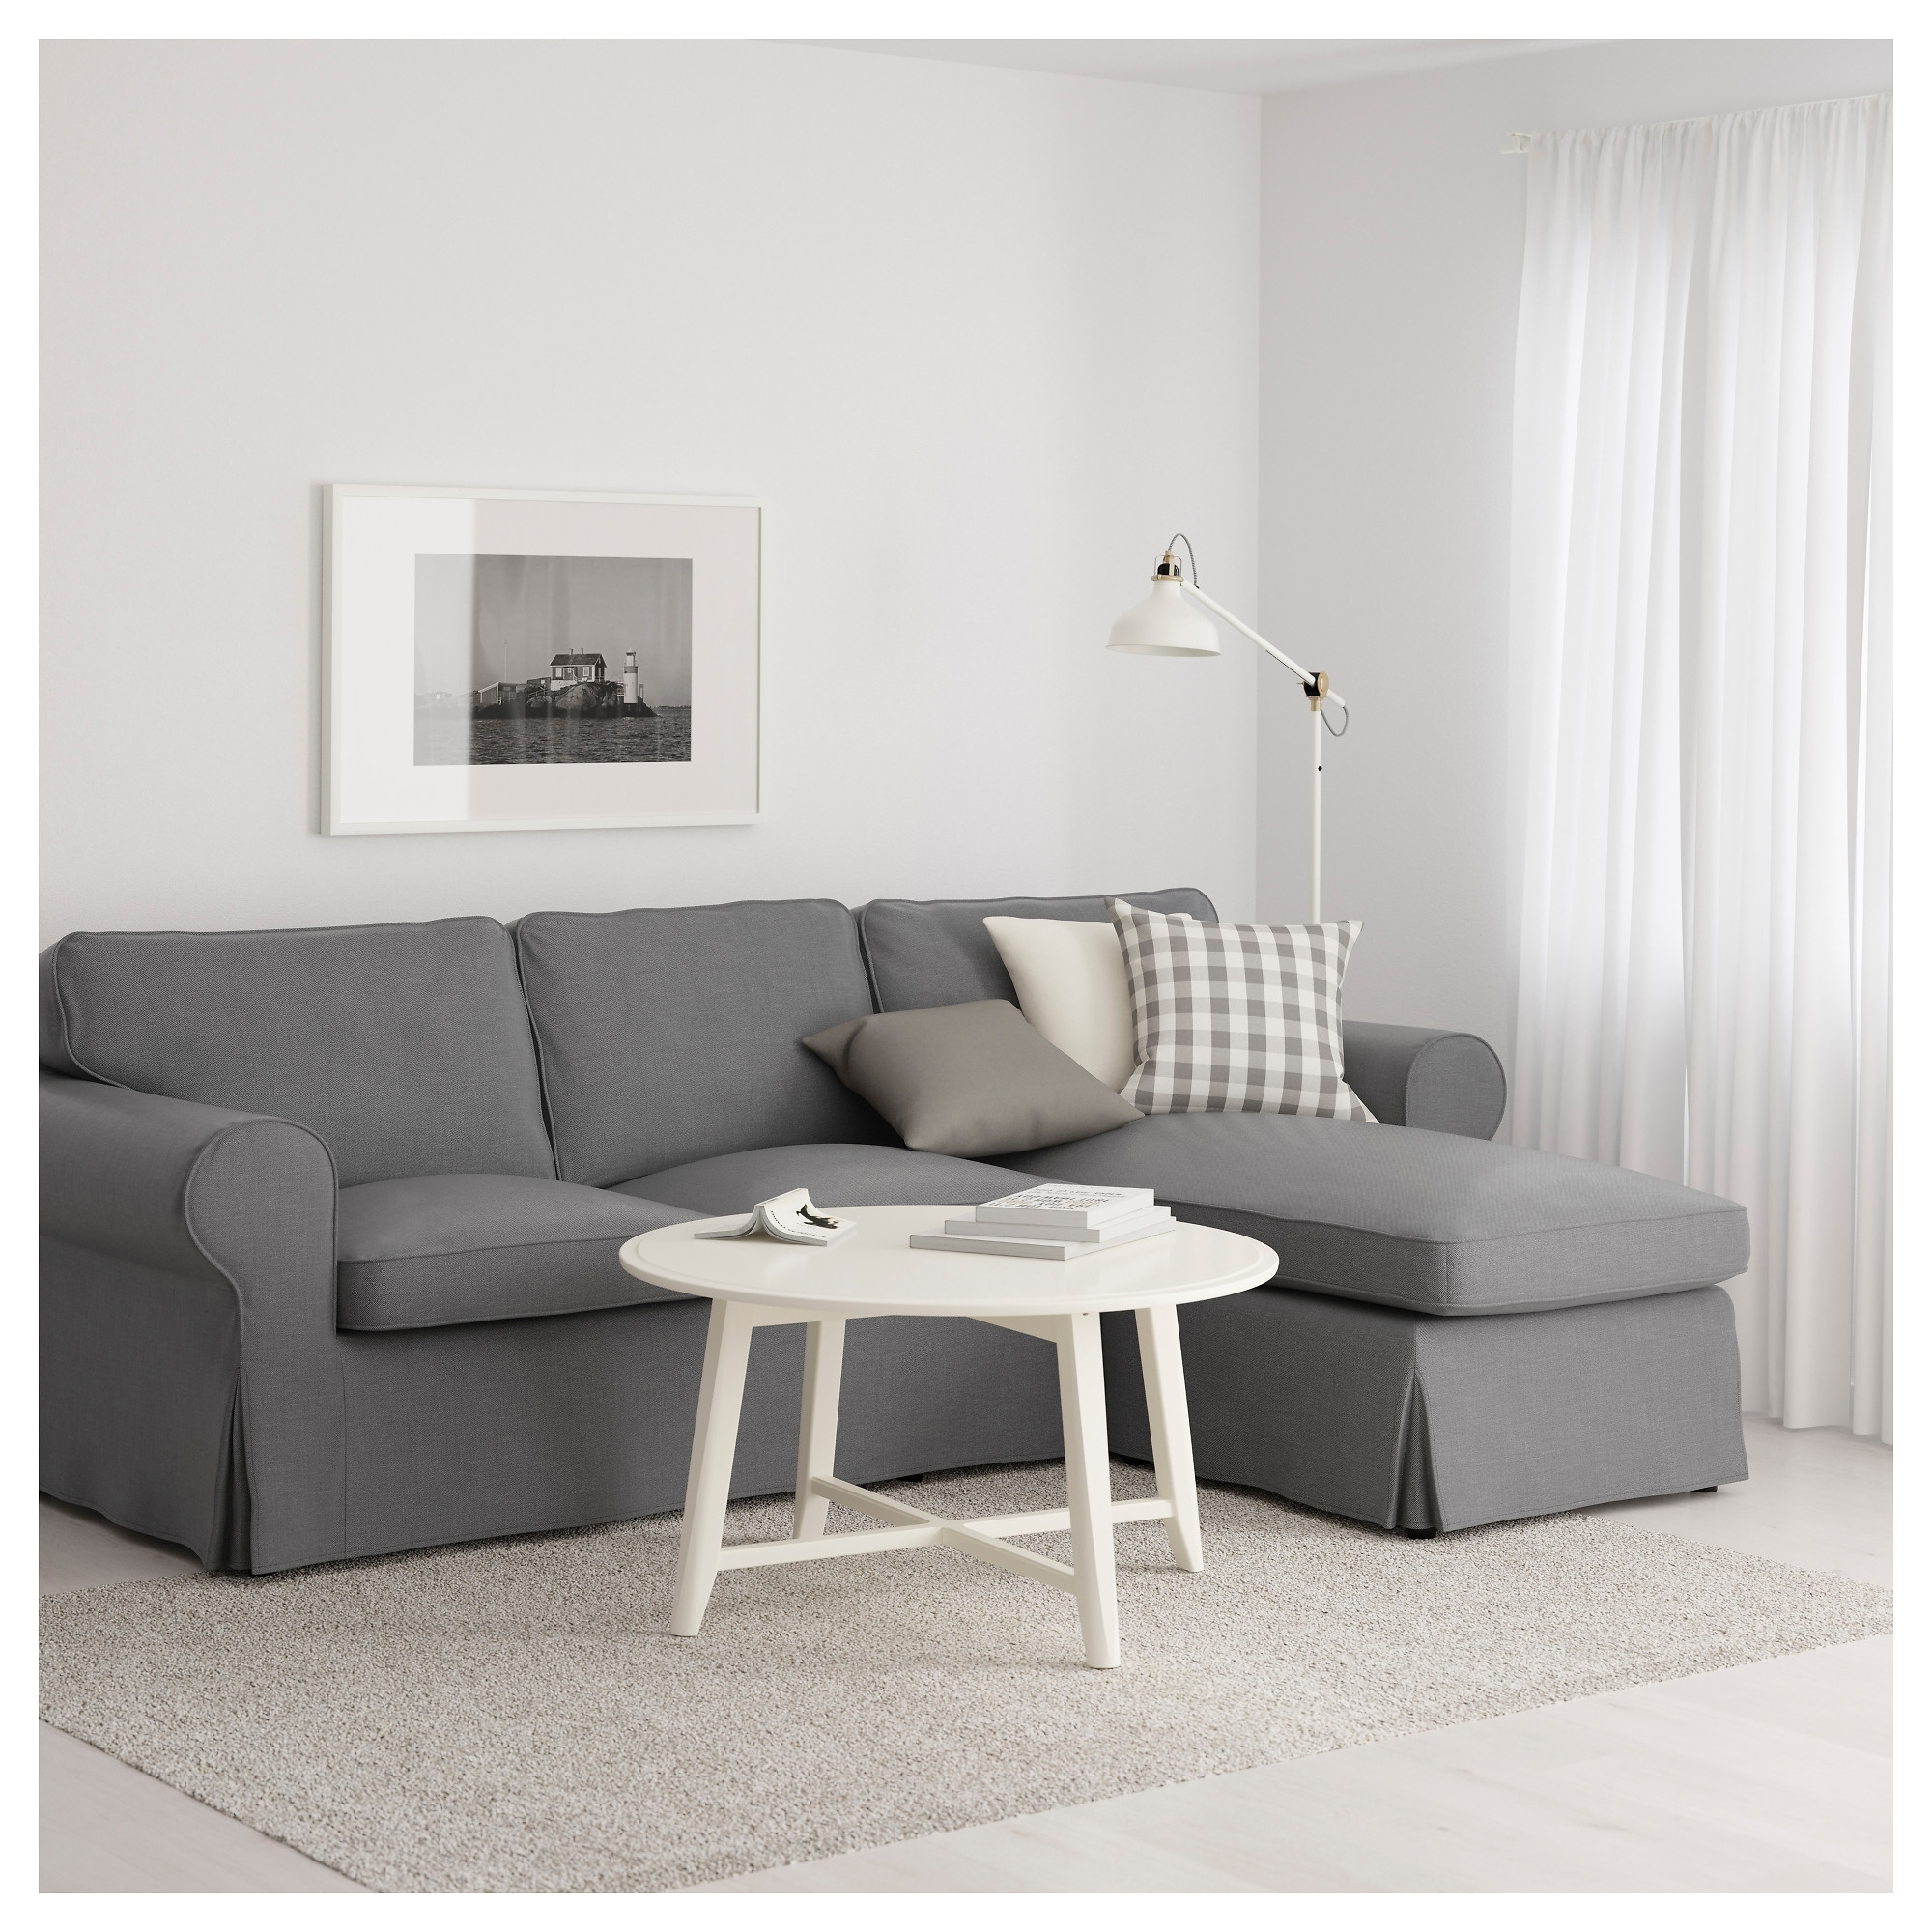 Ikea Ektorp Chaises In Recent Ektorp Sofa – With Chaise/nordvalla Light Blue – Ikea (View 8 of 15)